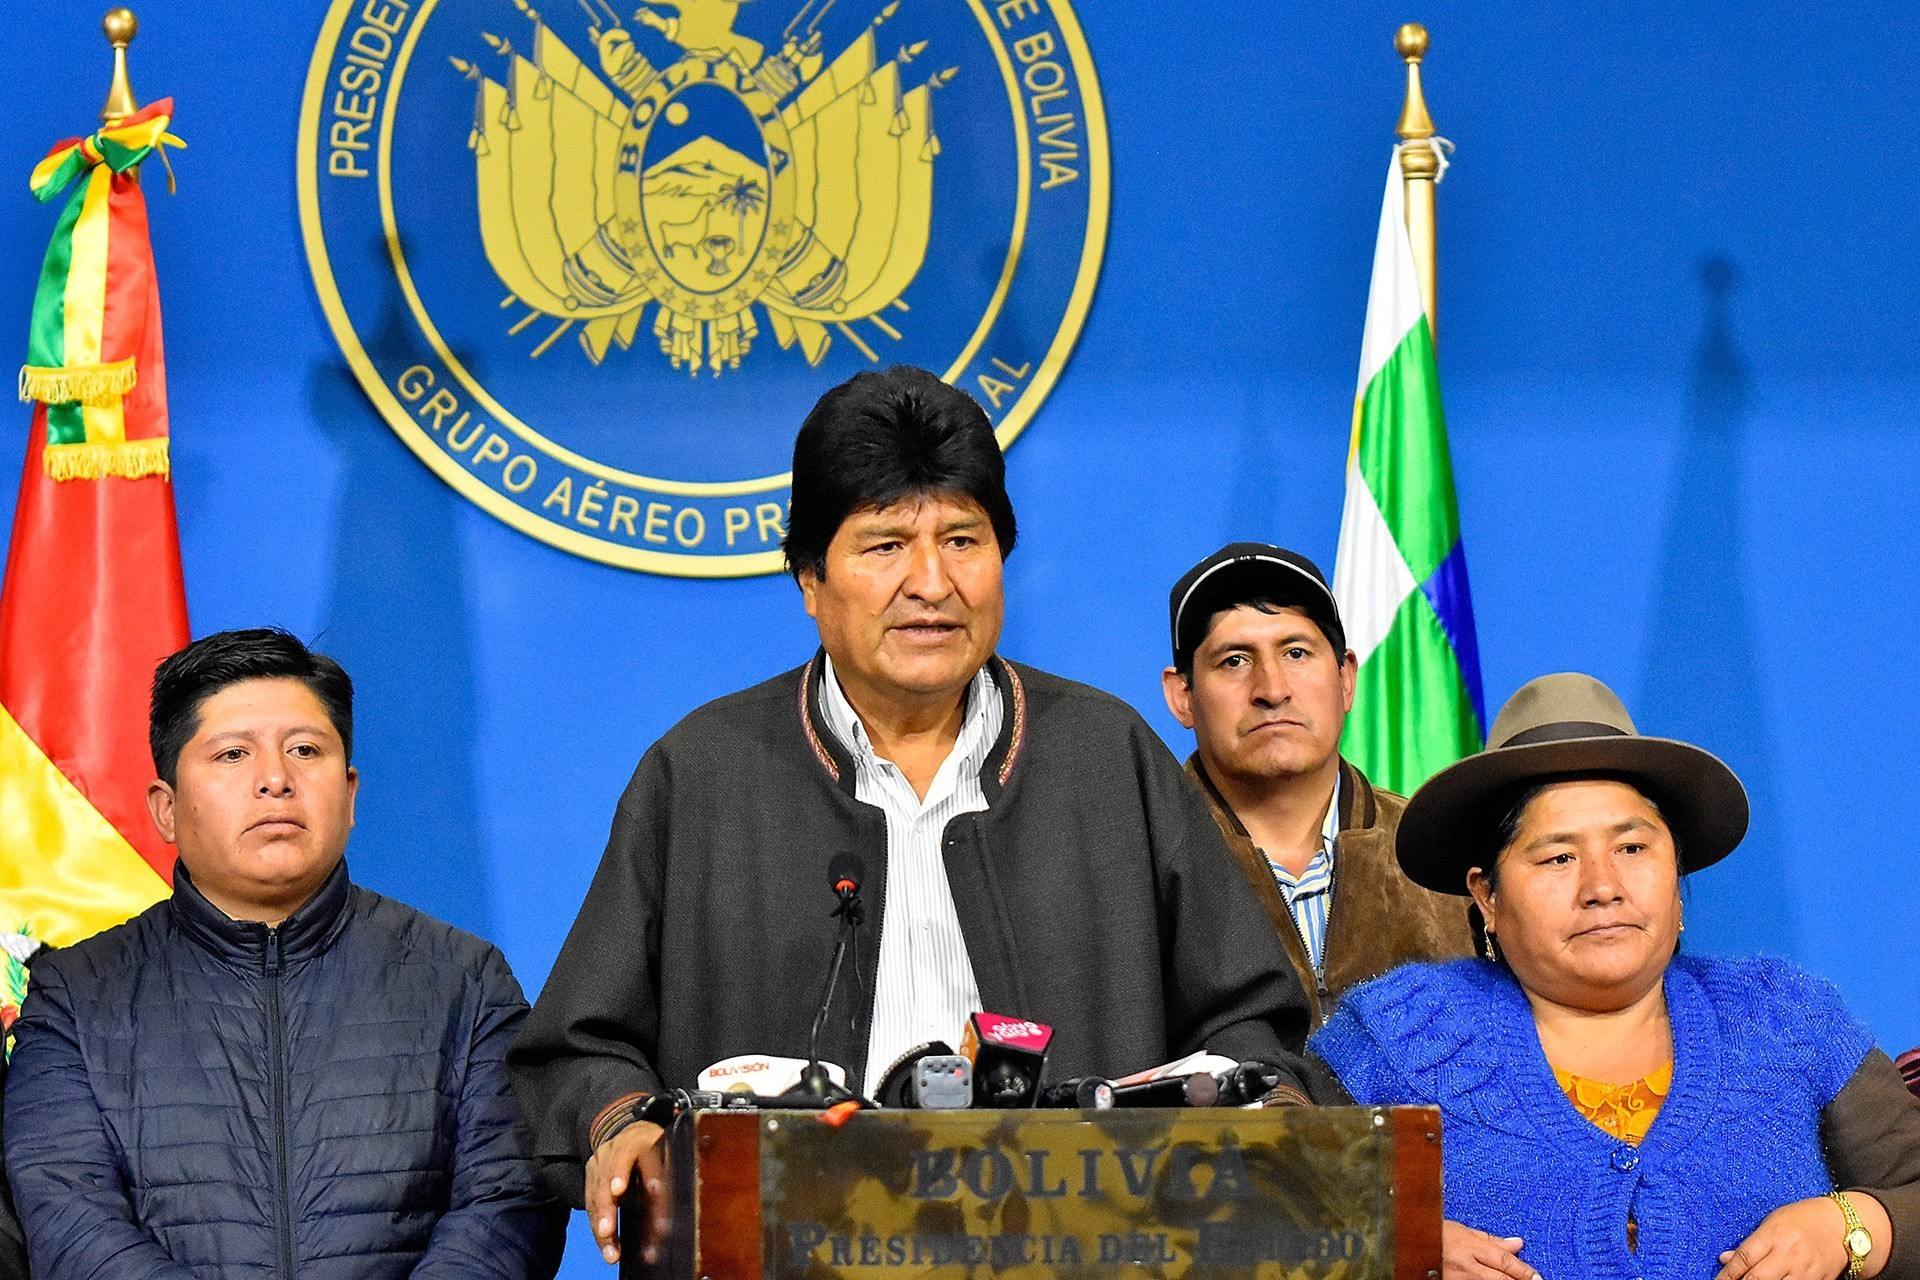 The Bolivian president, Evo Morales, gives a speech at the presidential hangar in El Alto.